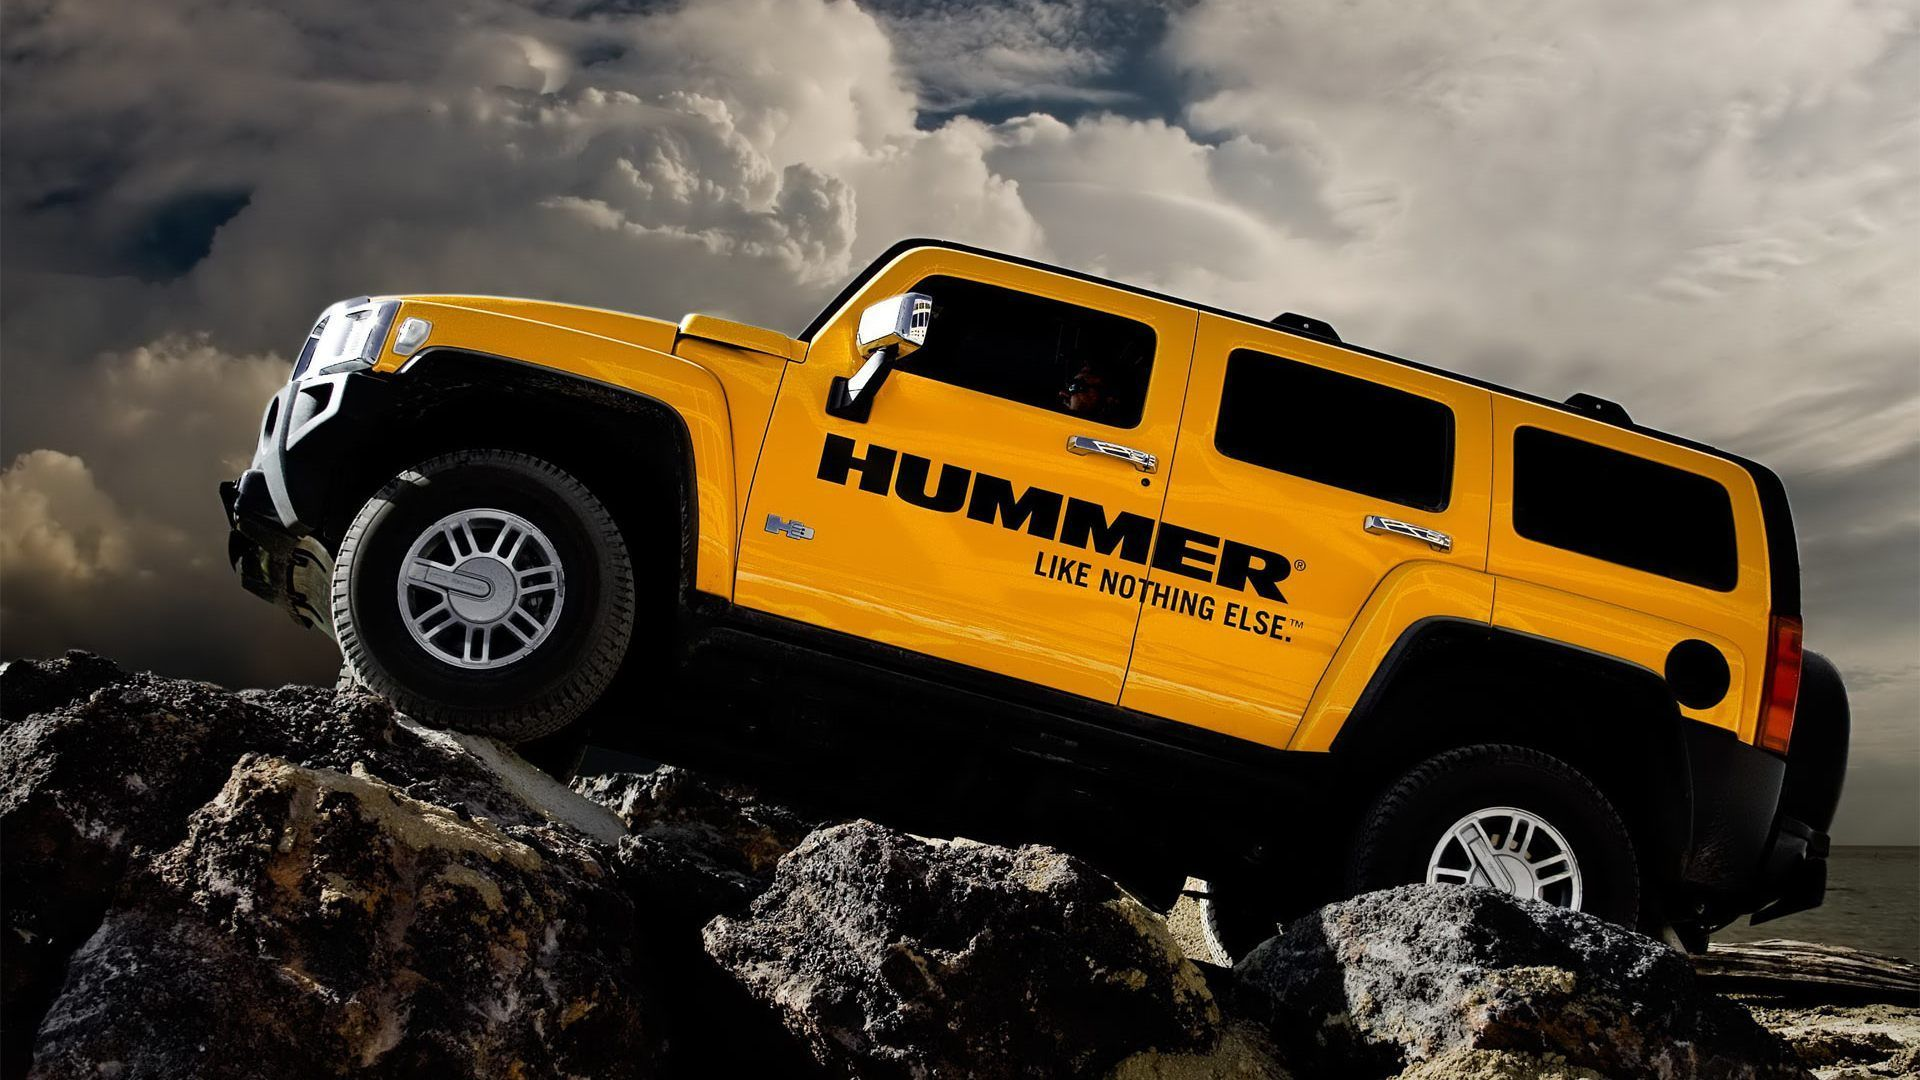 Hummer Car Wallpapers Hummer Car Backgrounds for PC Full HD